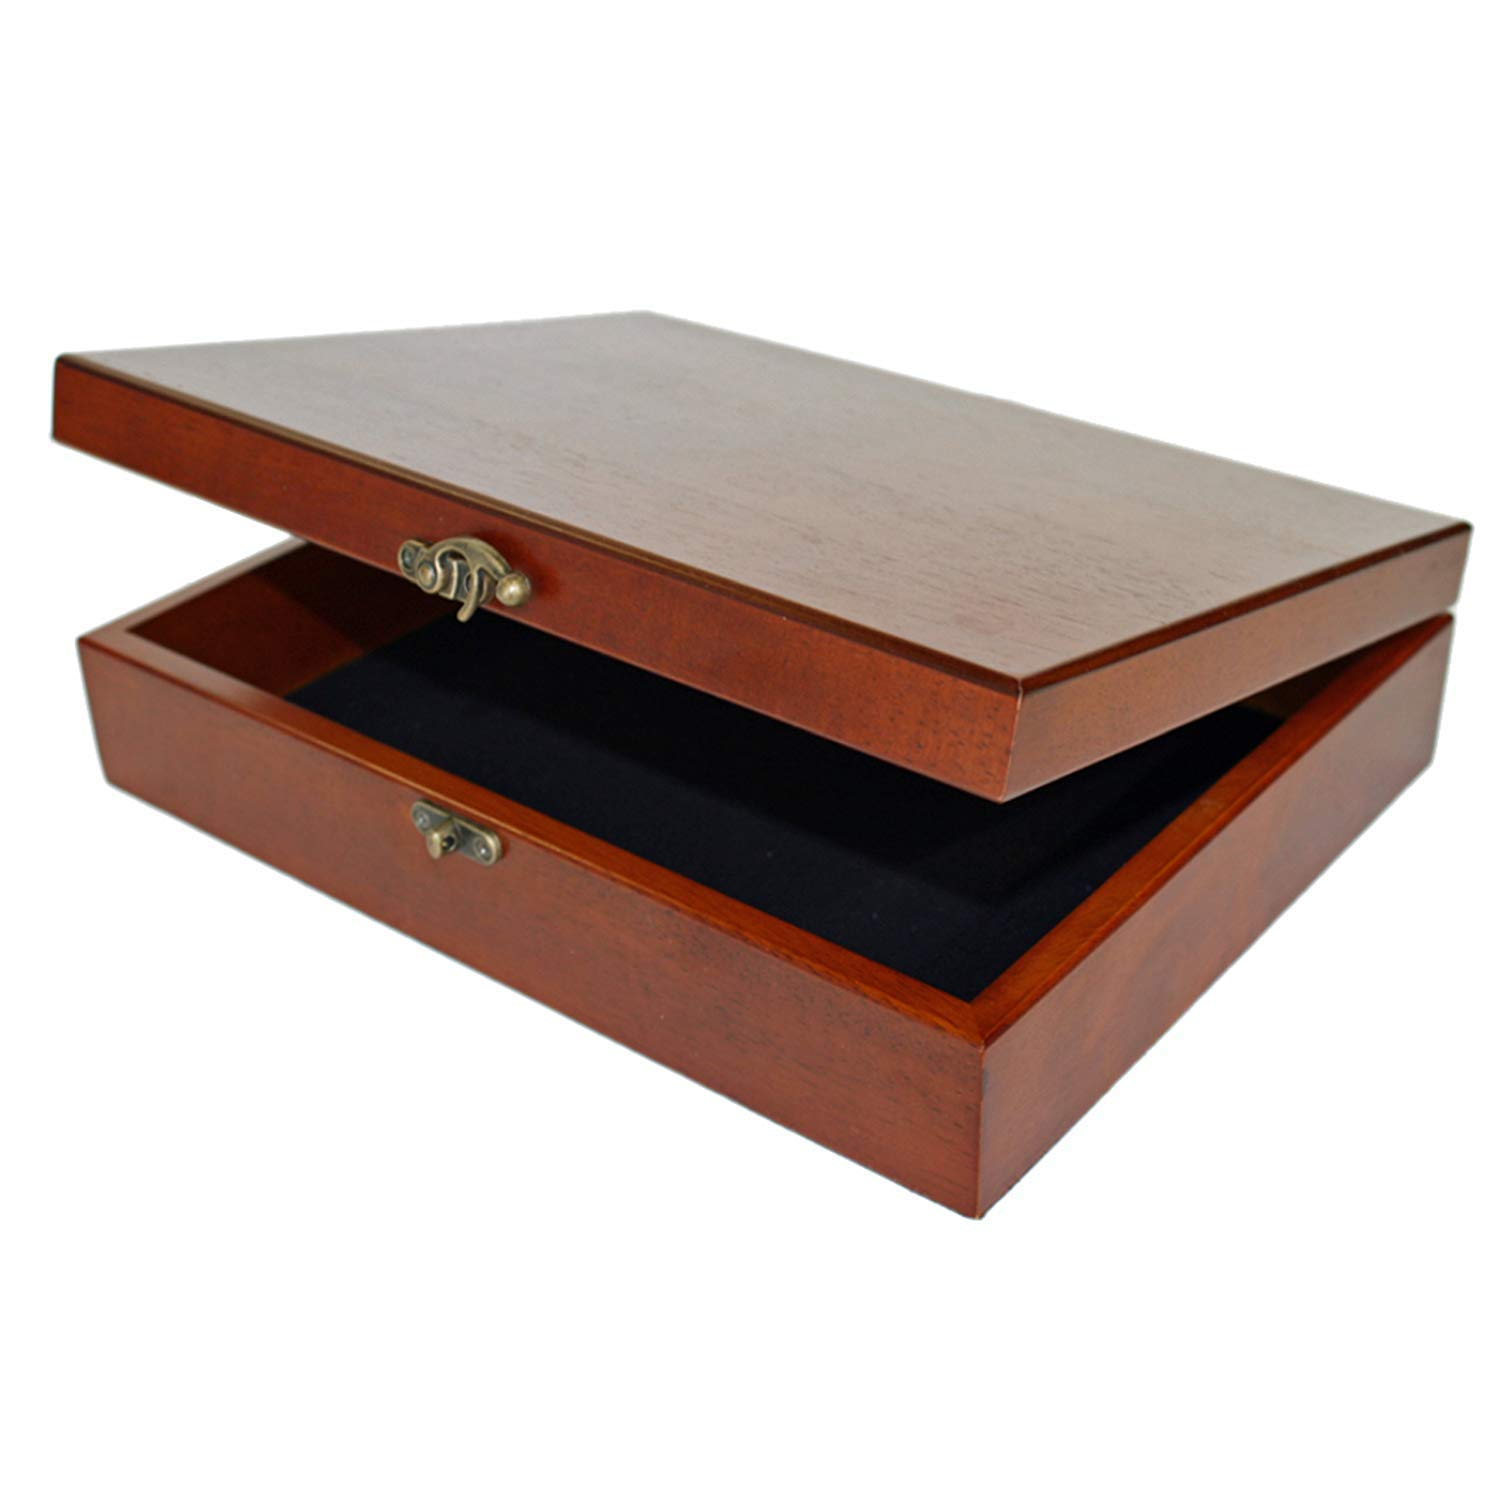 WE Games Old World Wooden Treasure Box with Brass Latch (Redwood Finish) by WE Games